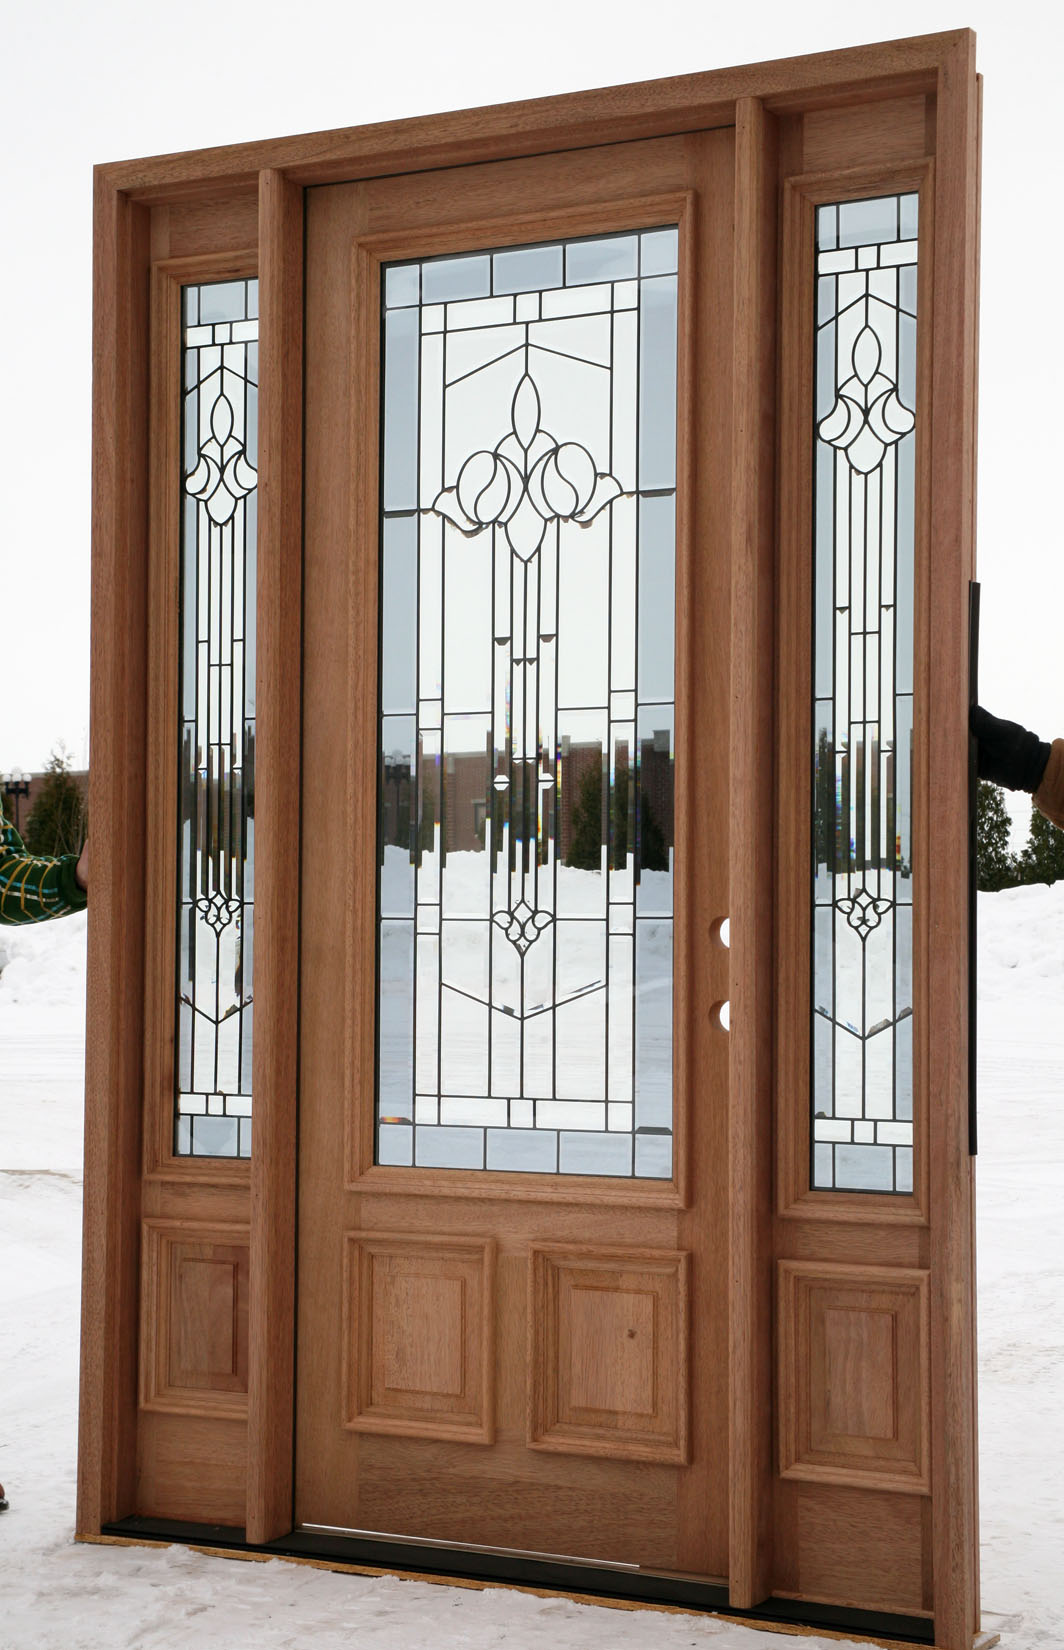 1650 #70462E Exterior Entry Door With Sidelights pic Metal Entry Doors With Sidelights 39211064